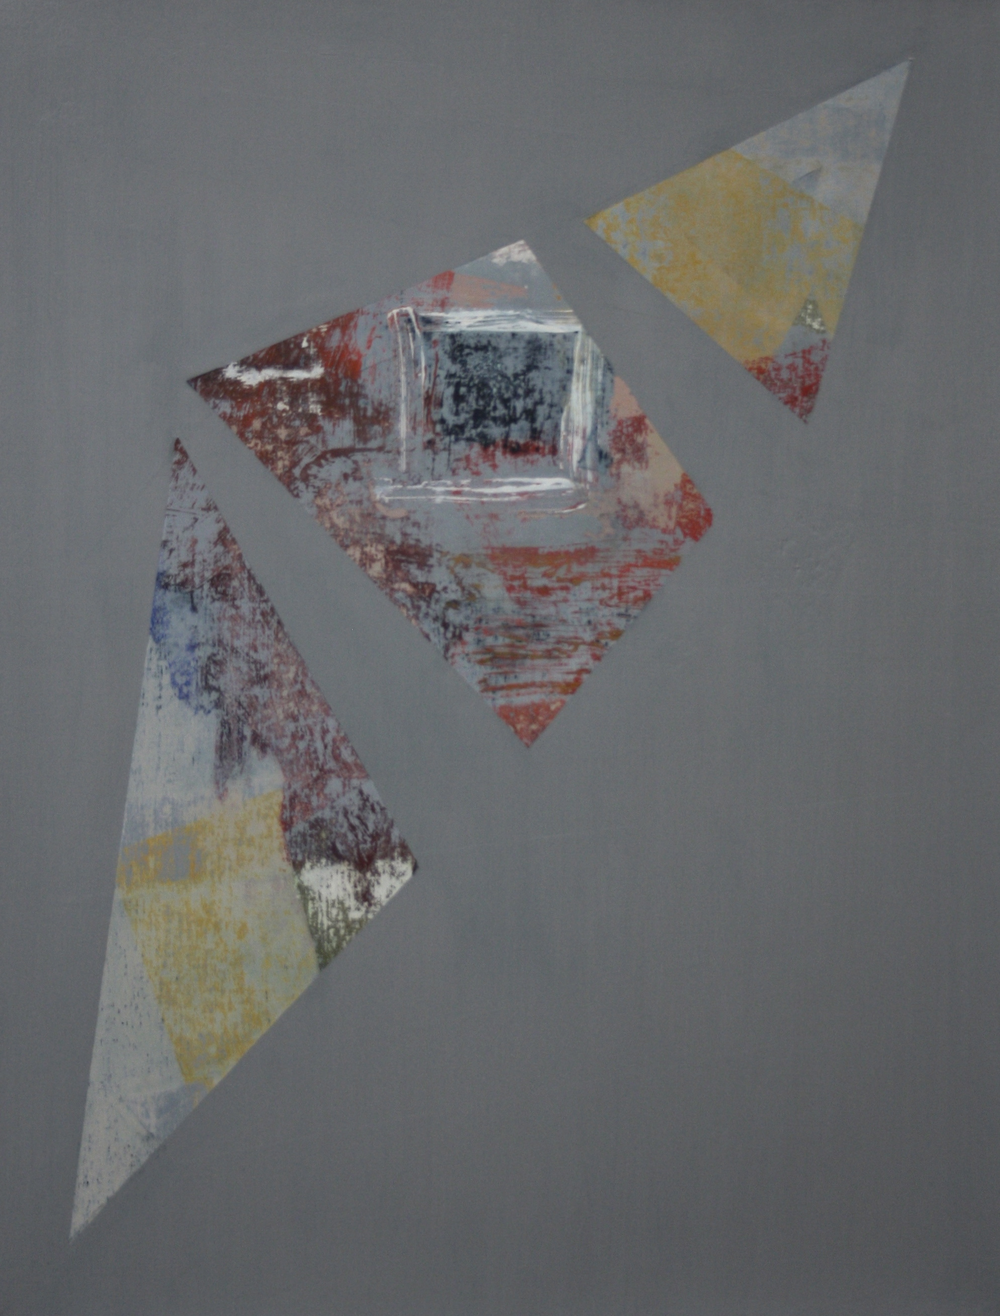 Degrees of Separation 2, 2010 – 2012, oil on canvas, 56 x 43 cm